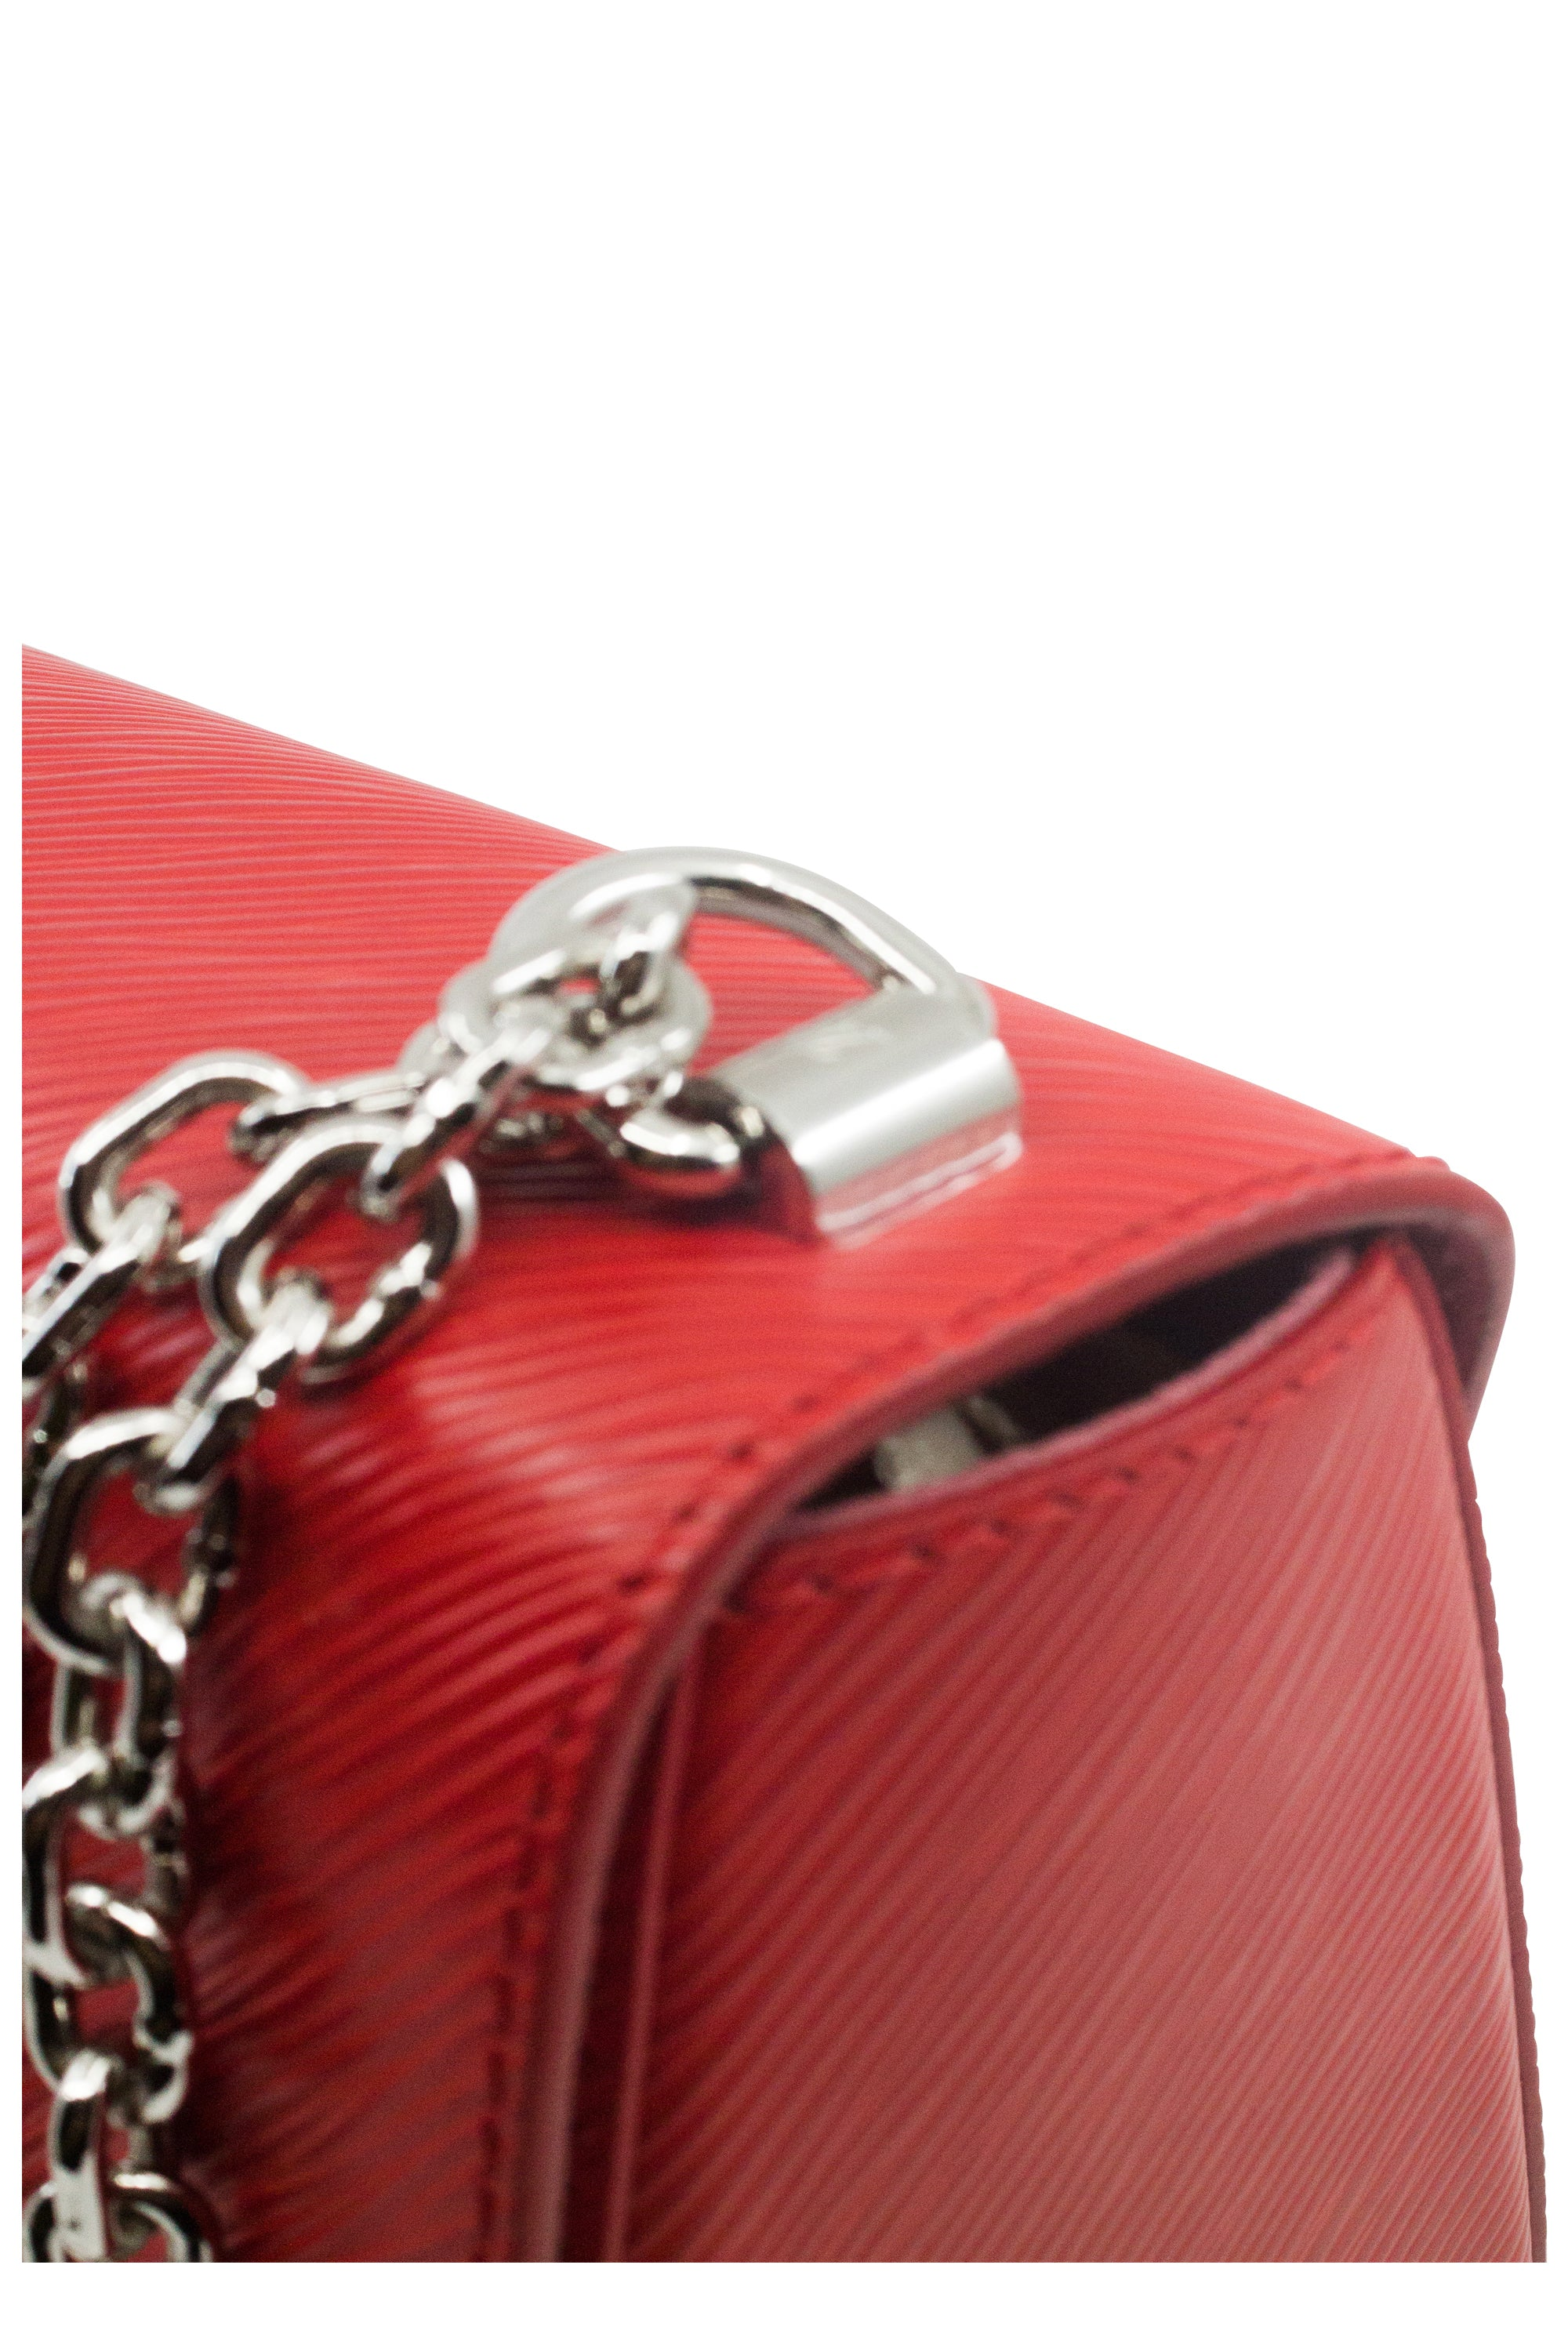 LOUIS VUITTON Twist MM Epi Red